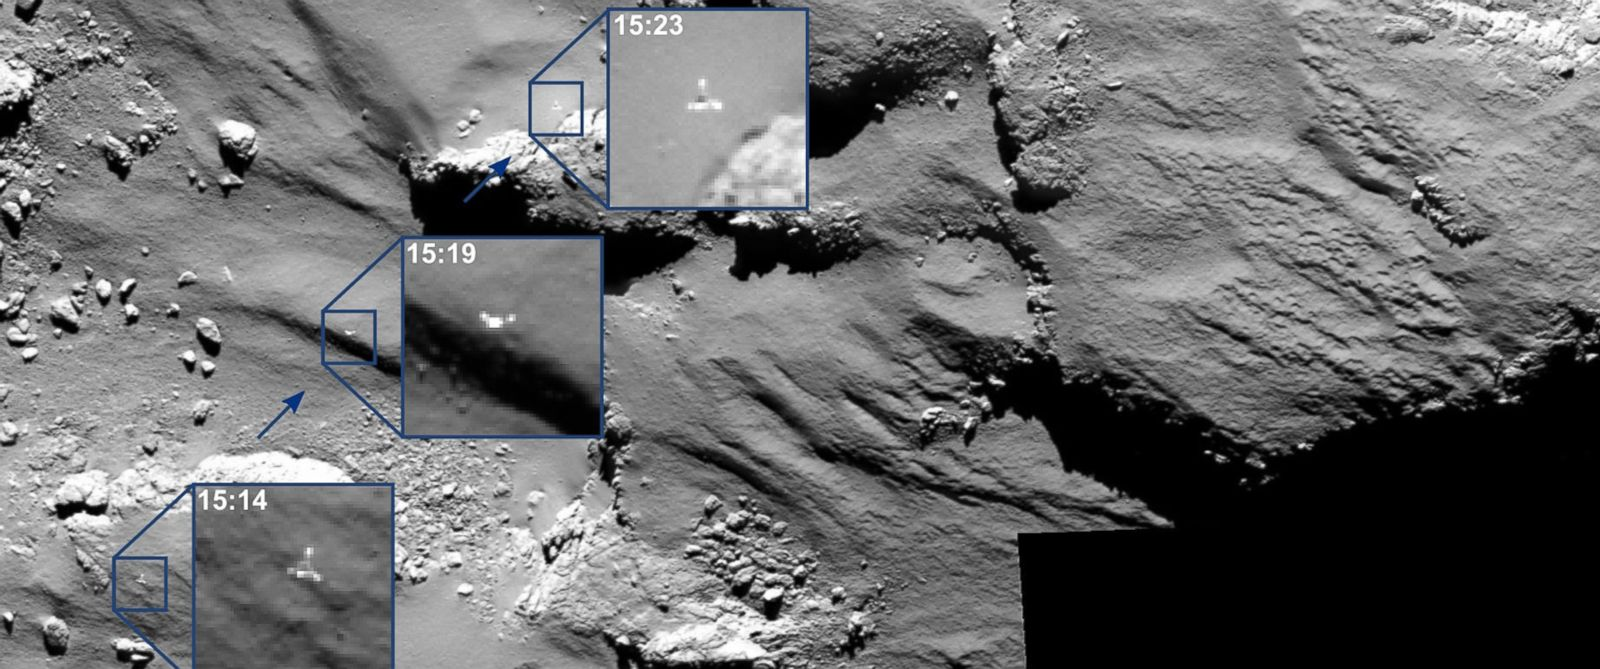 PHOTO: The combination image of several partially enlarged photographs shows the journey of Rosettas Philae lander as it approached and then rebounded from its first touchdown on Comet 67P/Churyumov–Gerasimenko, Nov. 12, 2014.